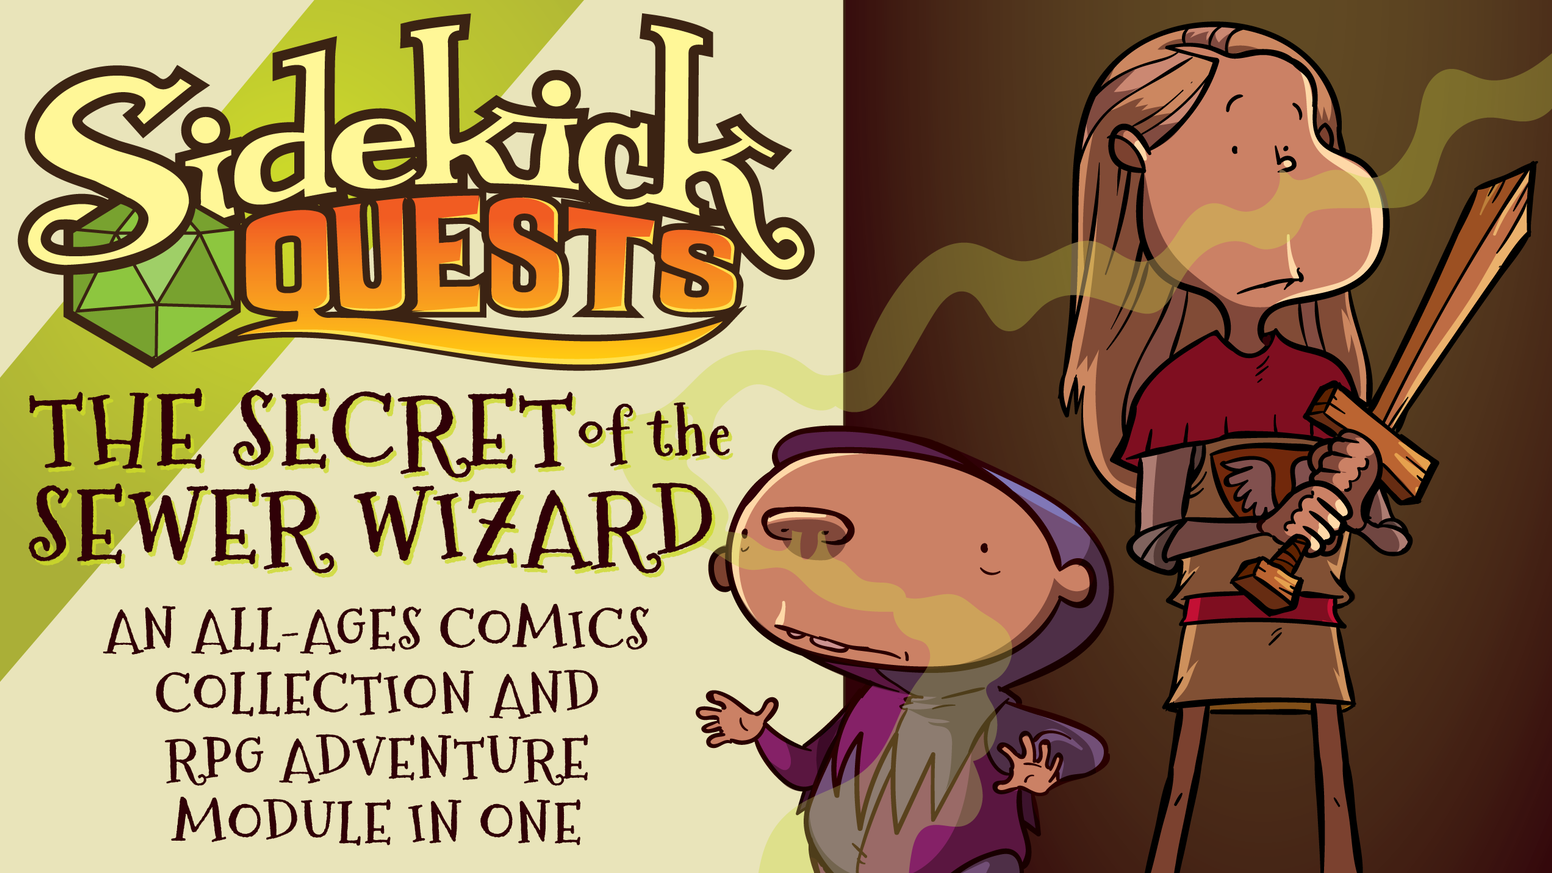 Animated Sidekick Connects Parents To >> Sidekick Quests Secret Of The Sewer Wizard By James Stowe Kickstarter